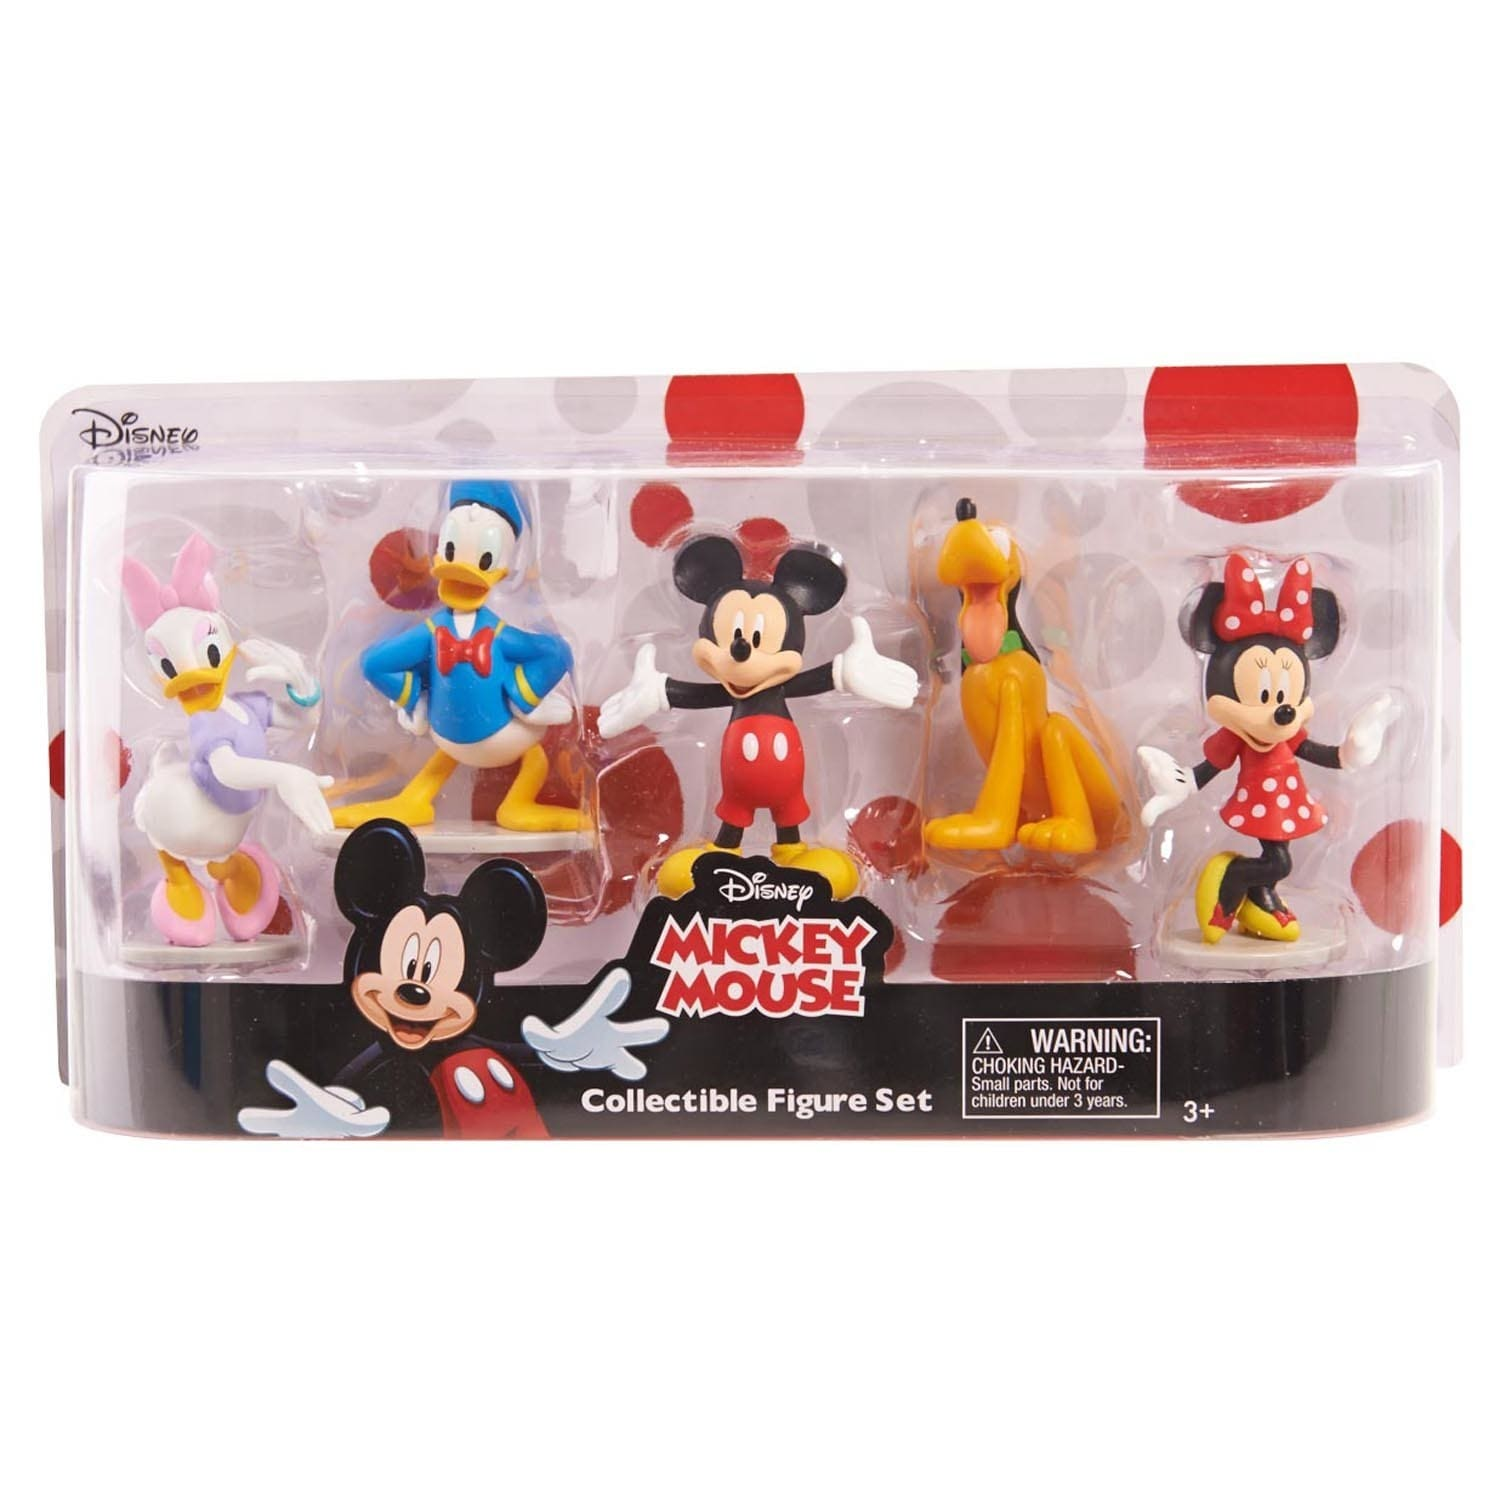 a58b09ee82 Shop Disney Classics Mickey Mouse Clubhouse Deluxe Figure Set - Free  Shipping On Orders Over  45 - Overstock - 16644986